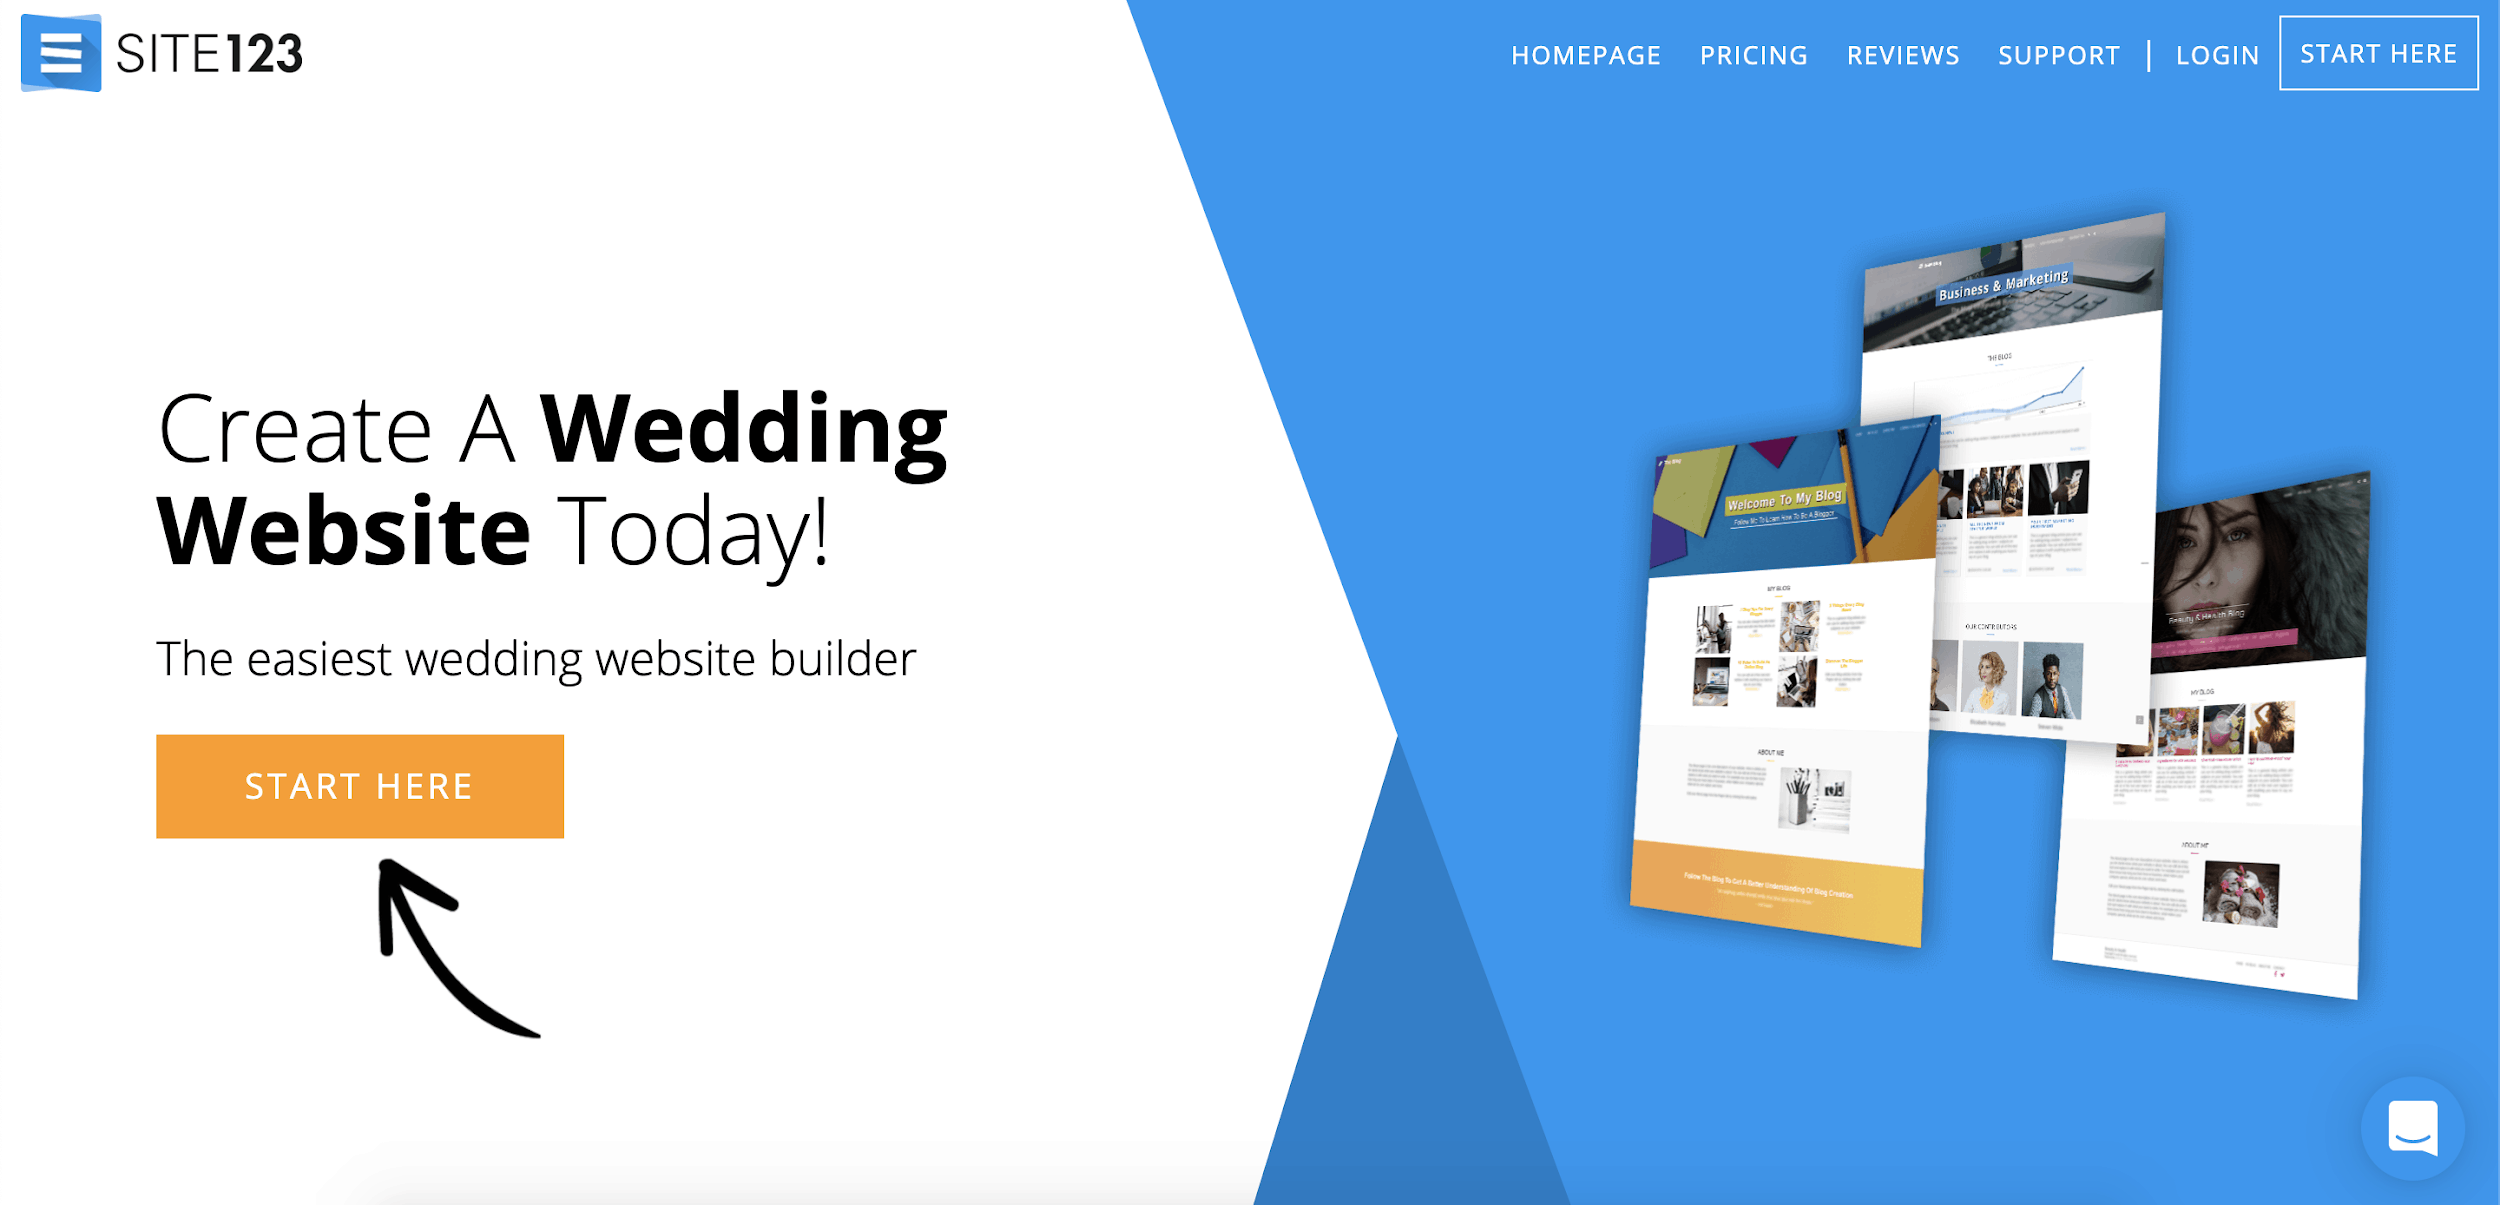 Site123 wedding website builder